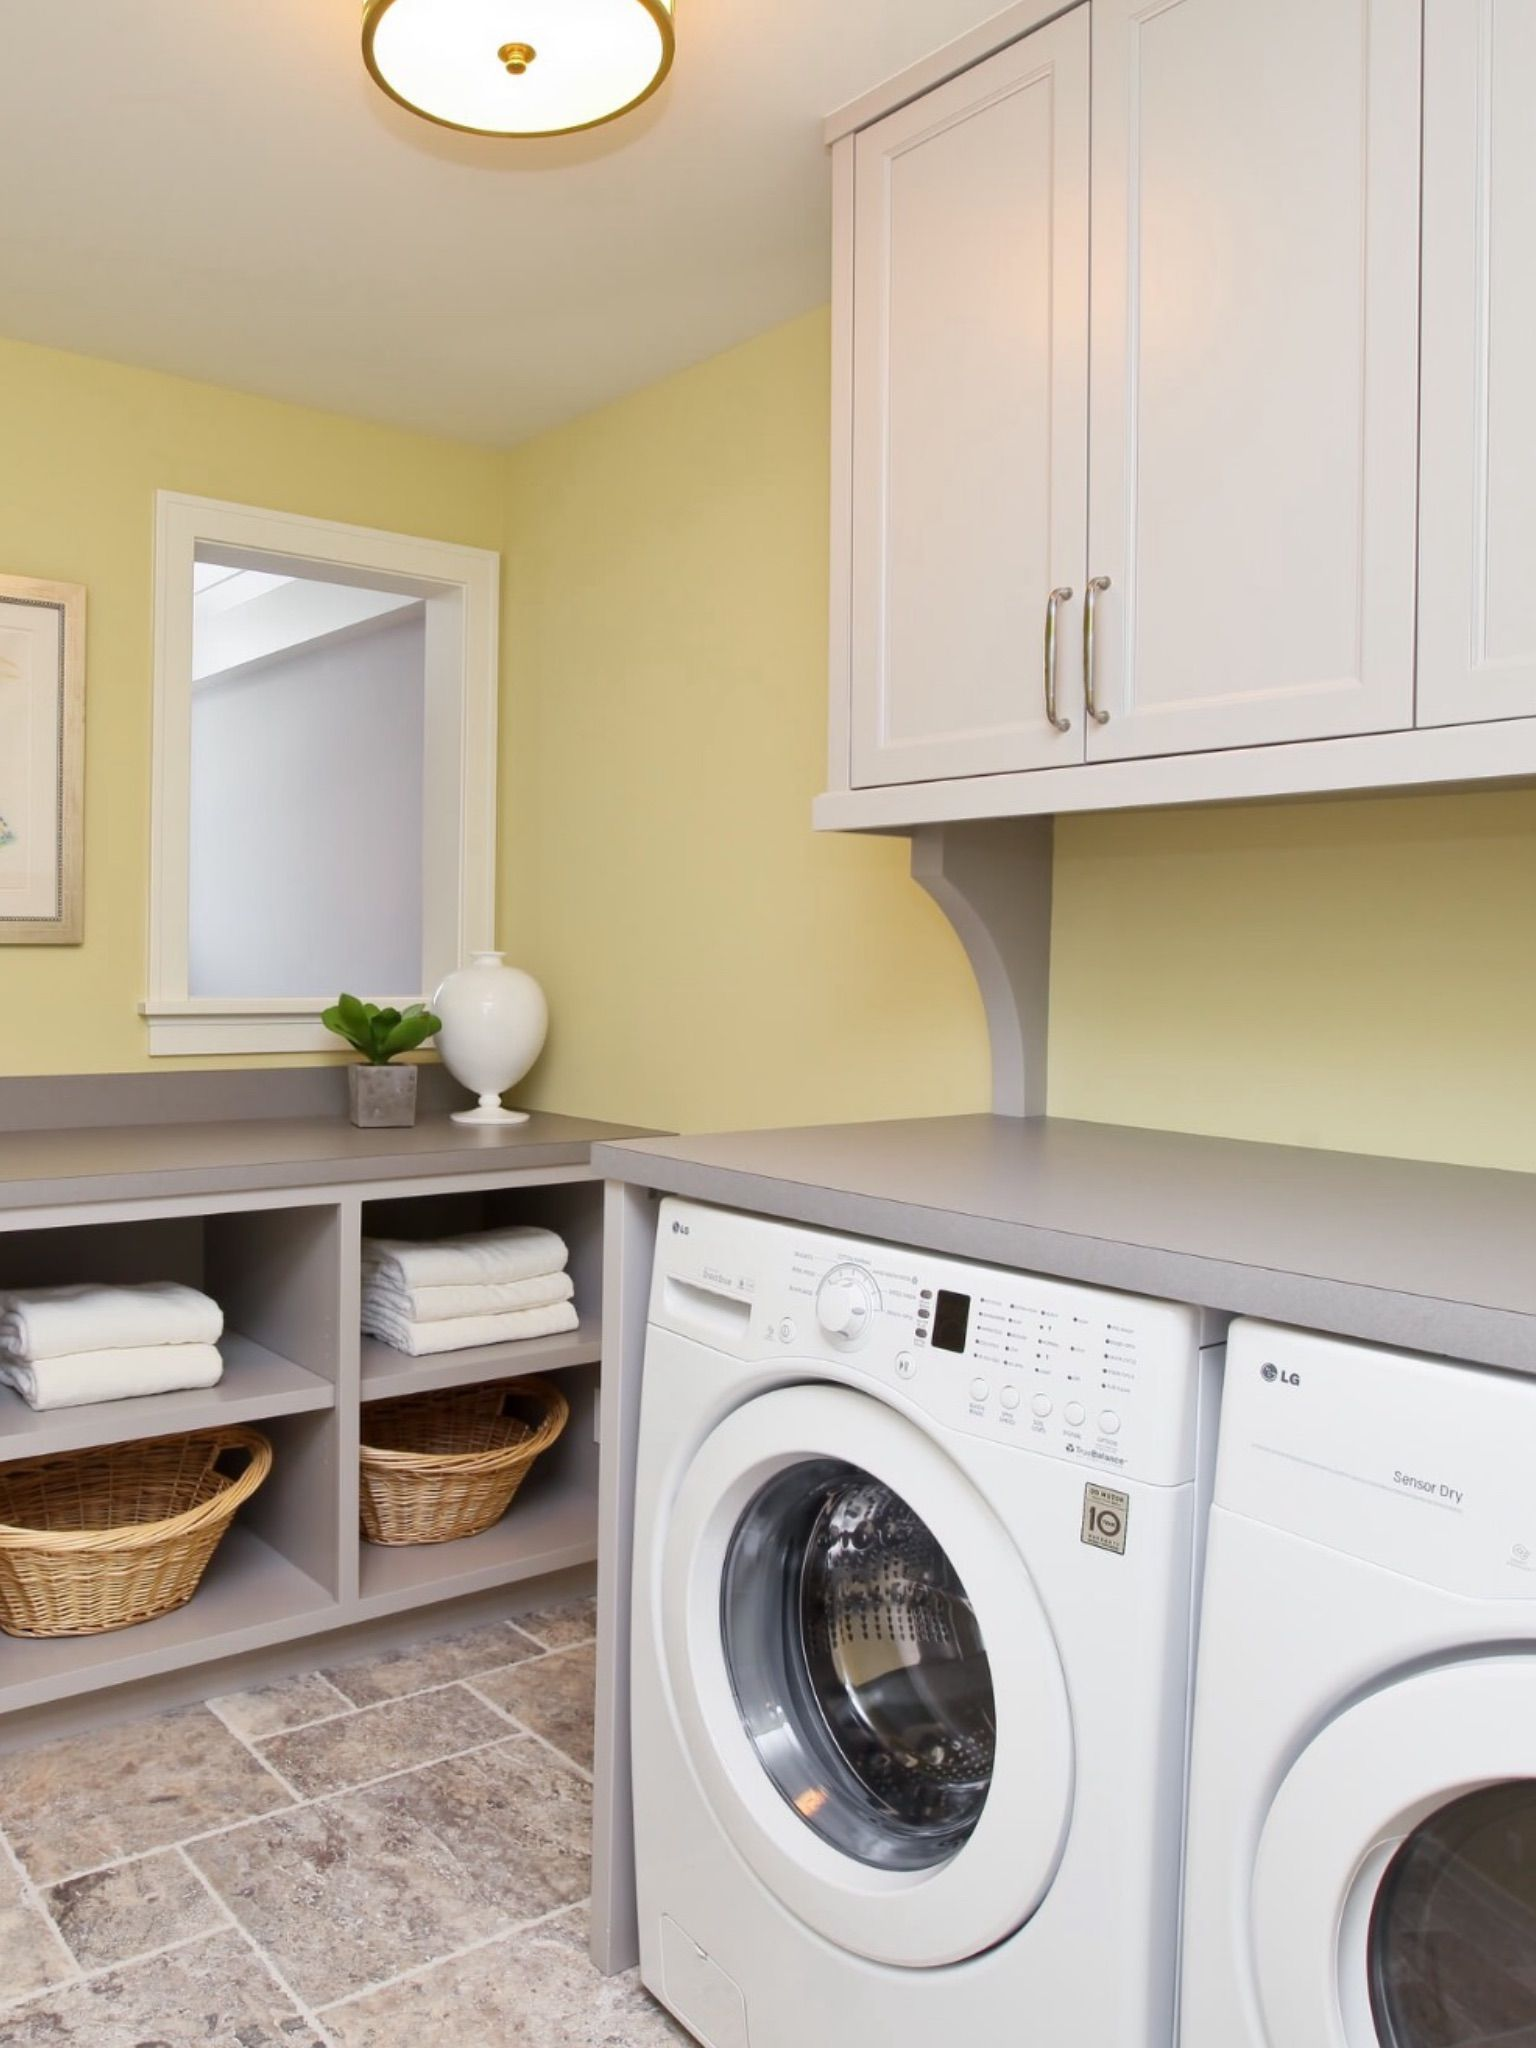 Pin by Kashina Fairley on Laundry rooms | Pinterest | Laundry rooms ...